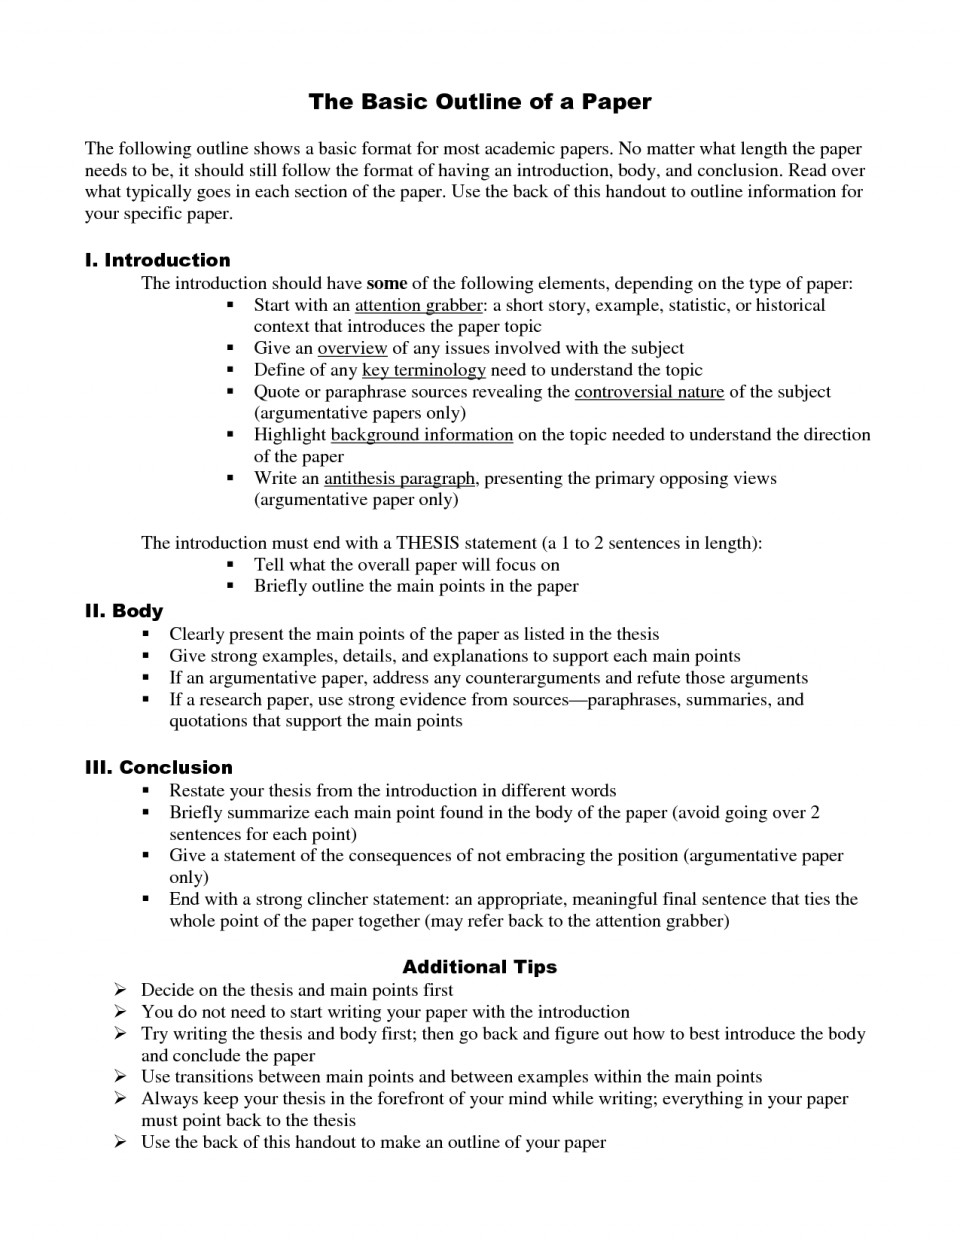 011 Paper Outline Research Template 7gkv1usl For Phenomenal A Mla How To Write An Ppt On Autism 960